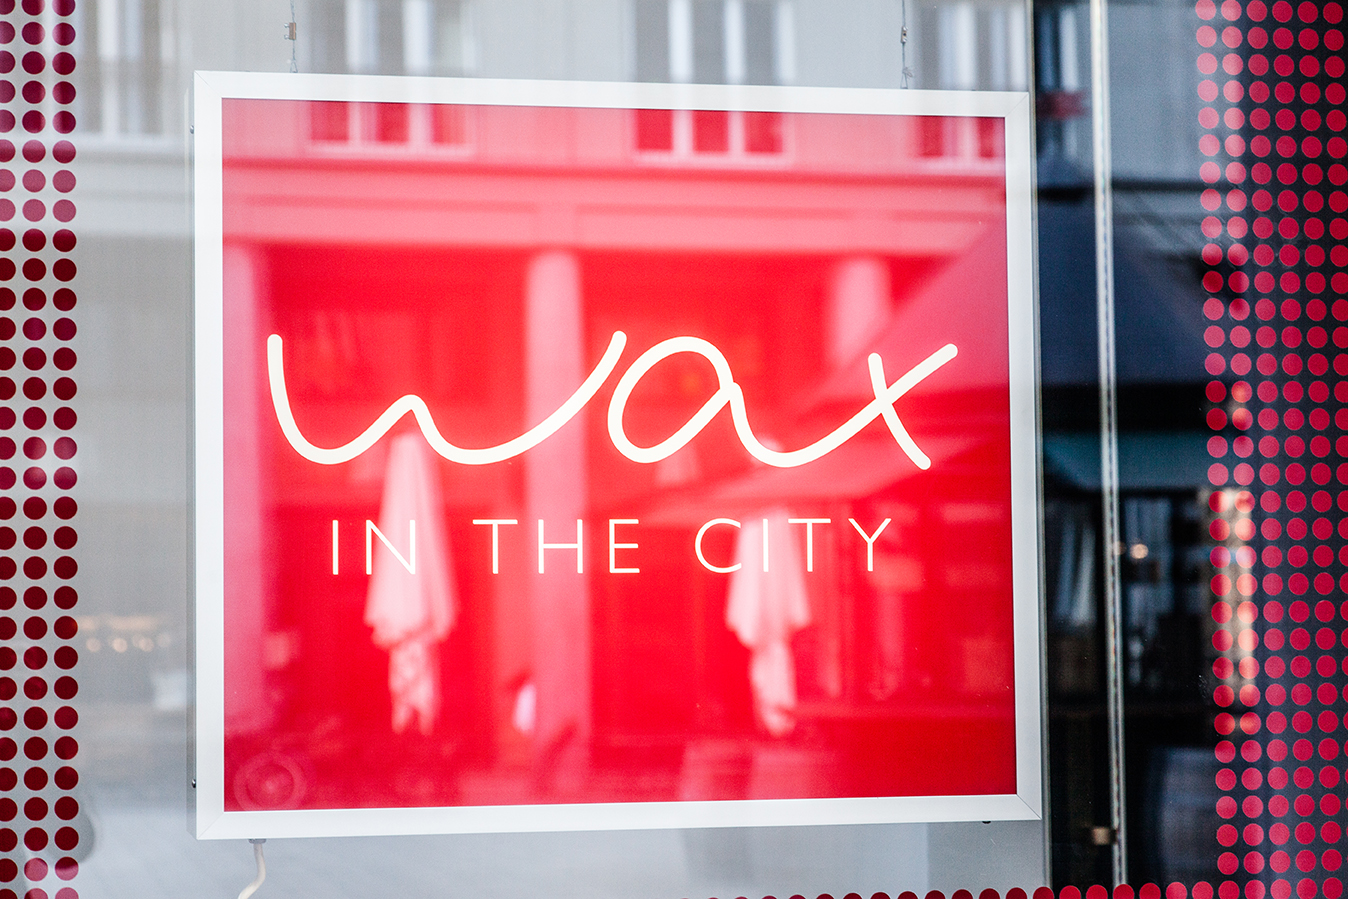 Wax In the City - Waxing Wien